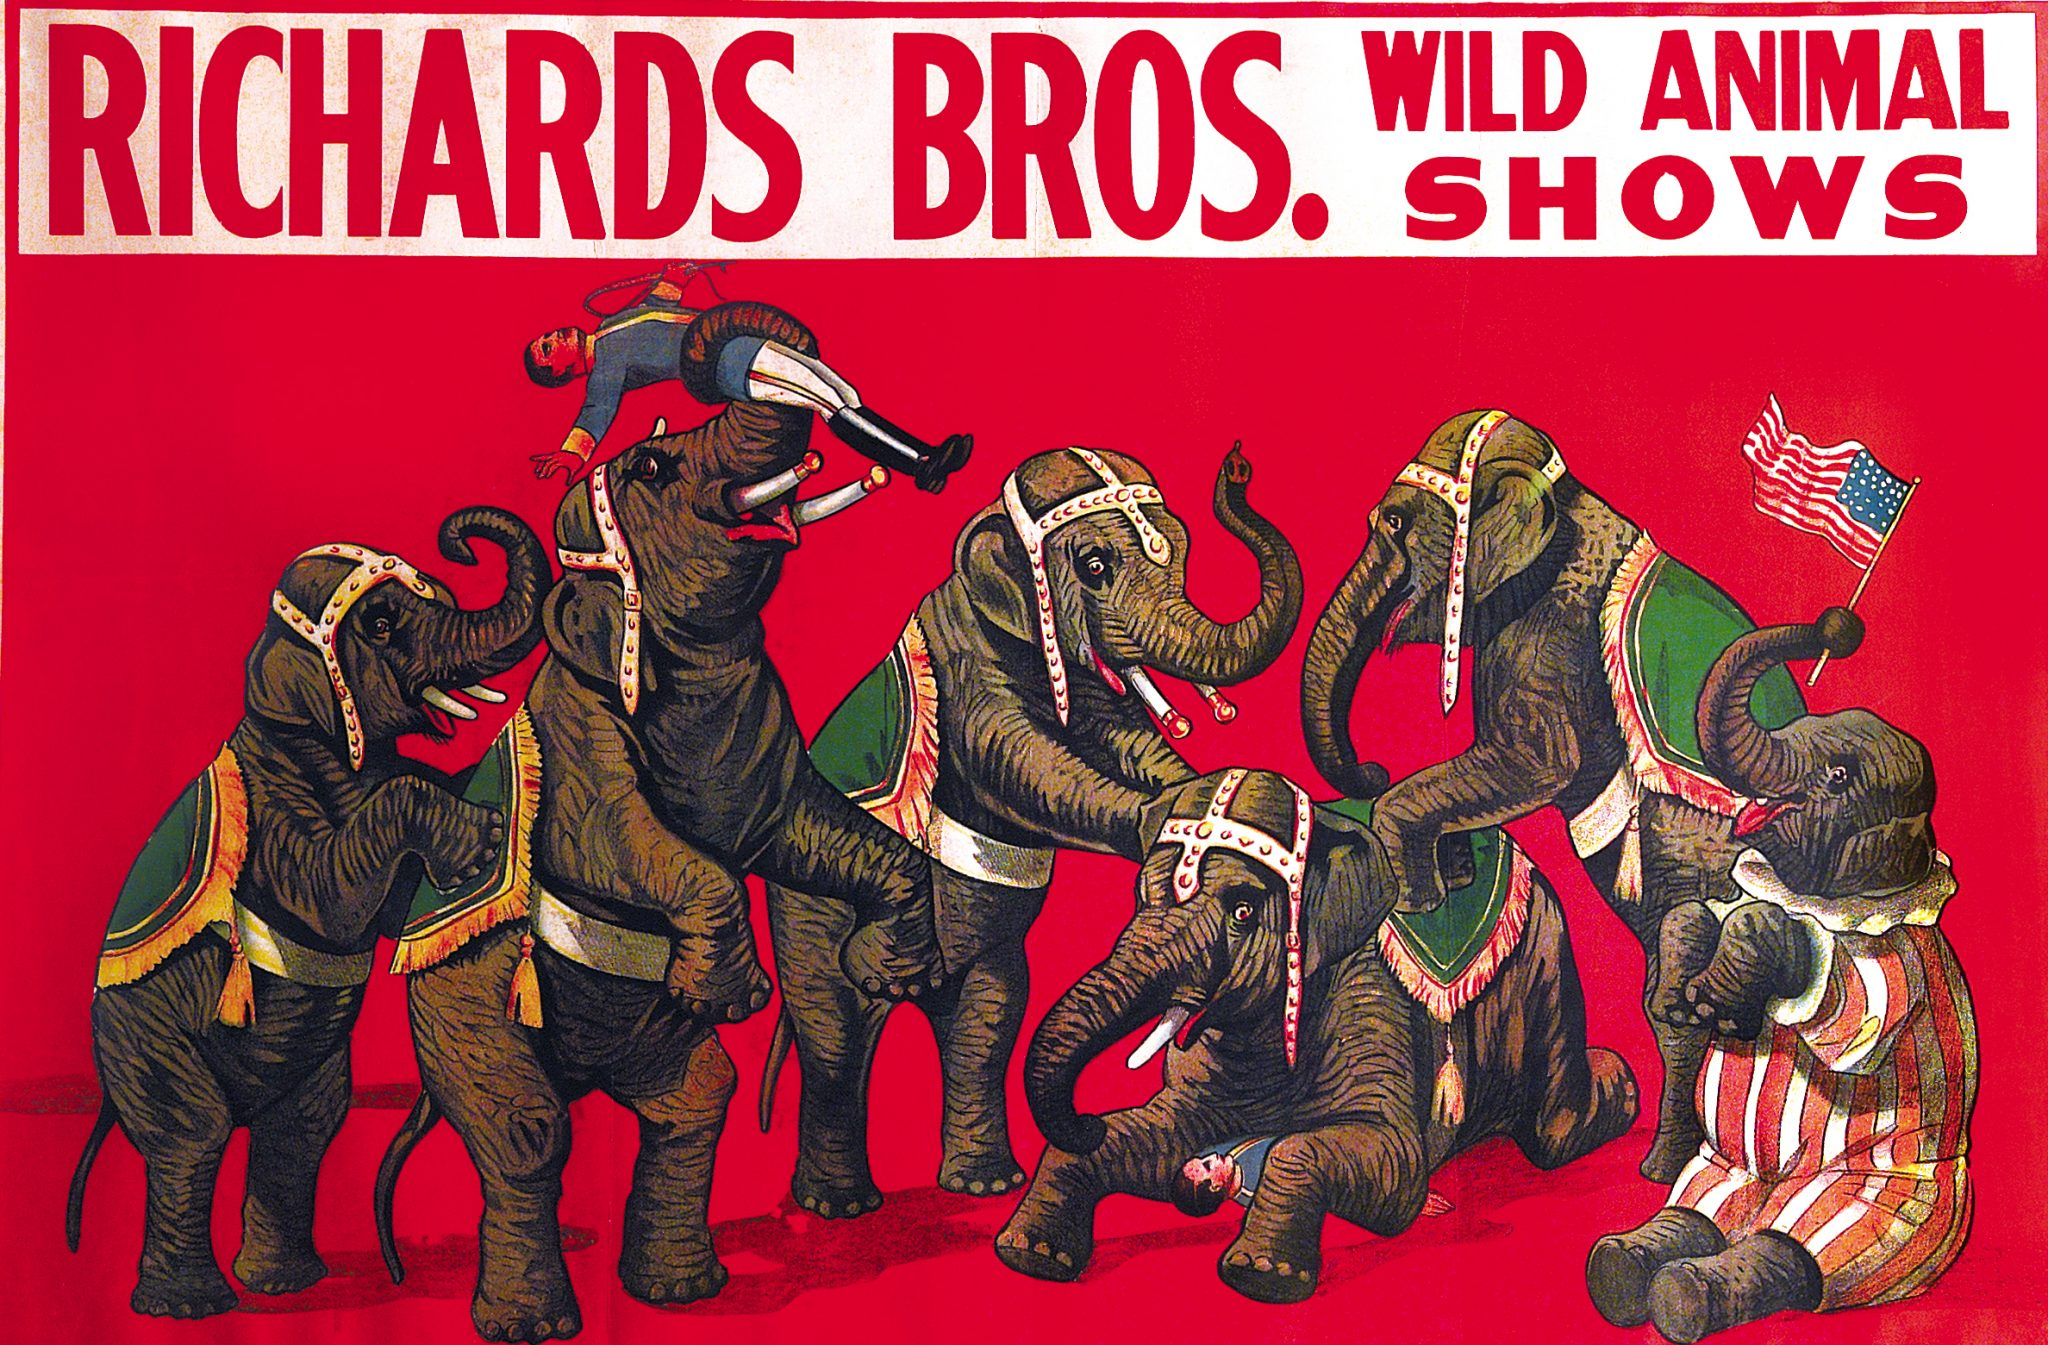 Vintage Poster, Richard Bros./Wild Animal Shows, c.1900. Park West Gallery Collection.